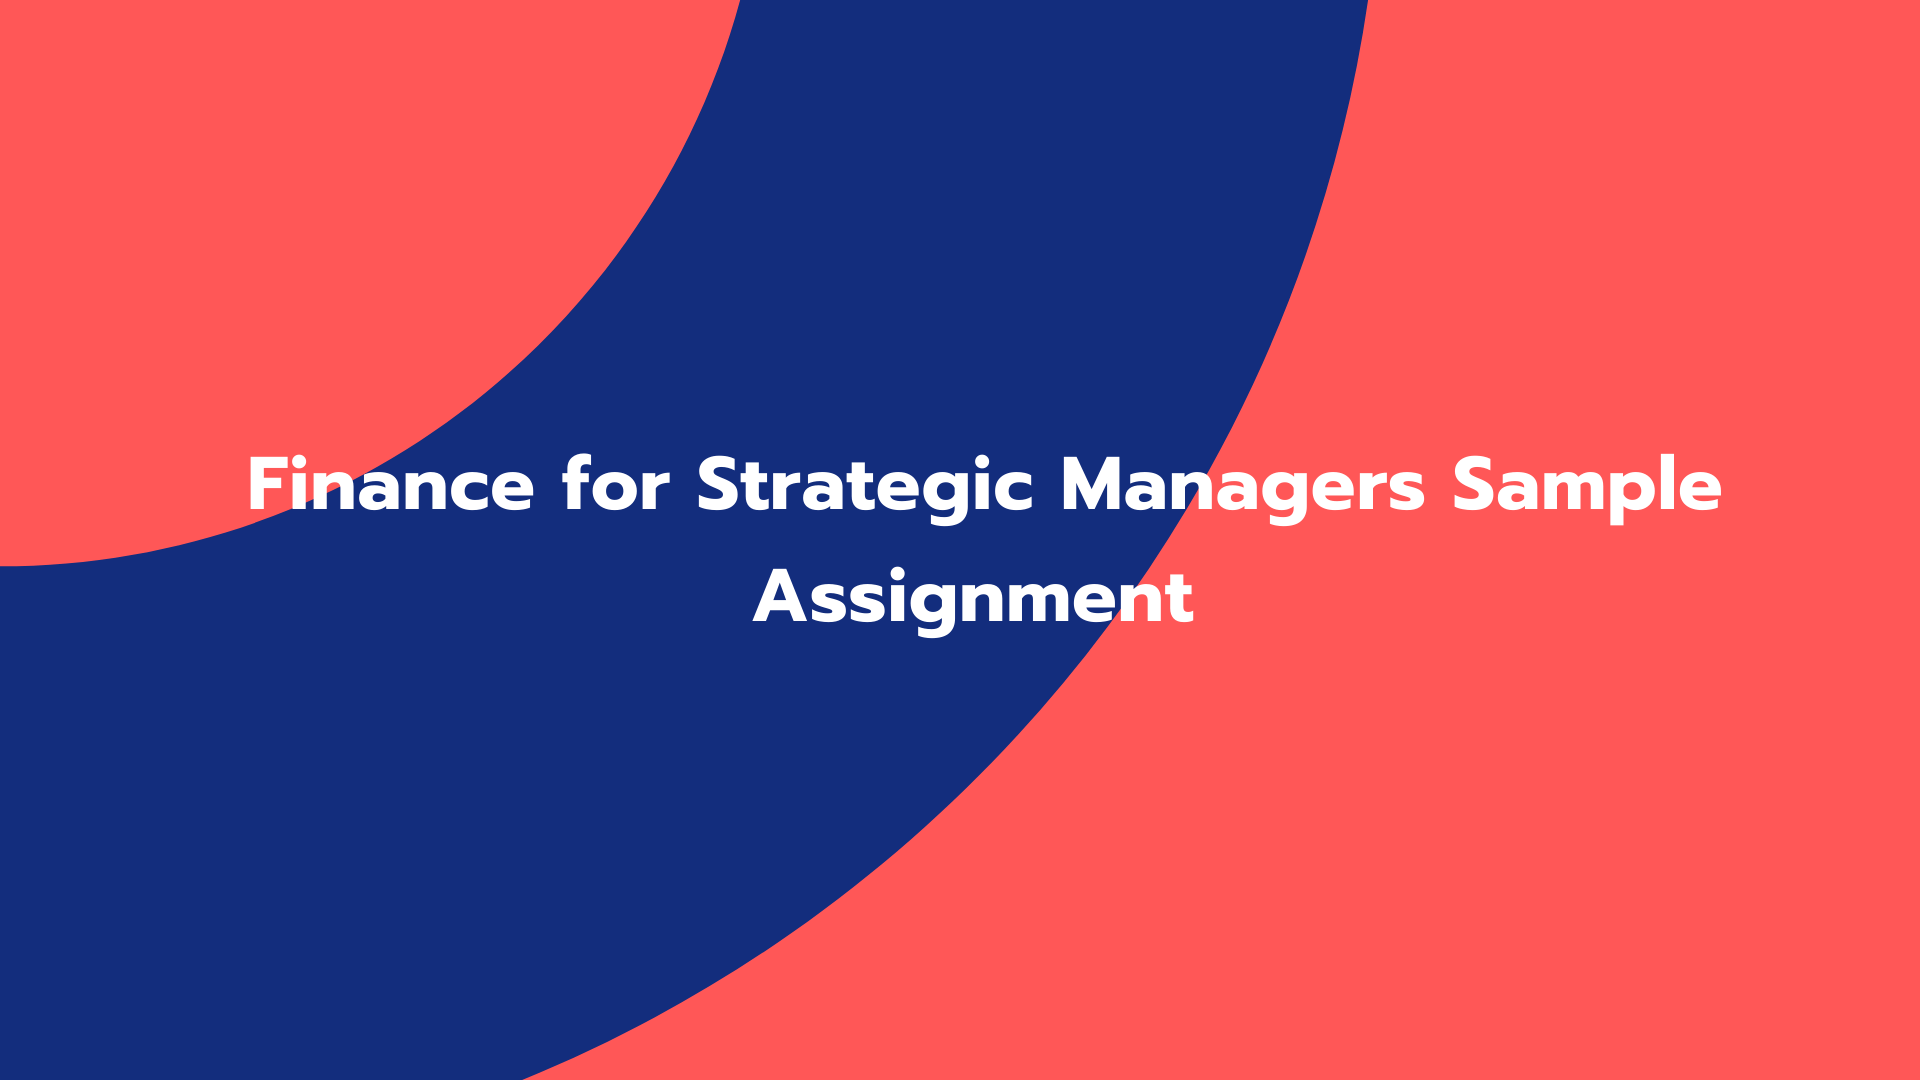 Finance for Strategic Managers Sample Assignment